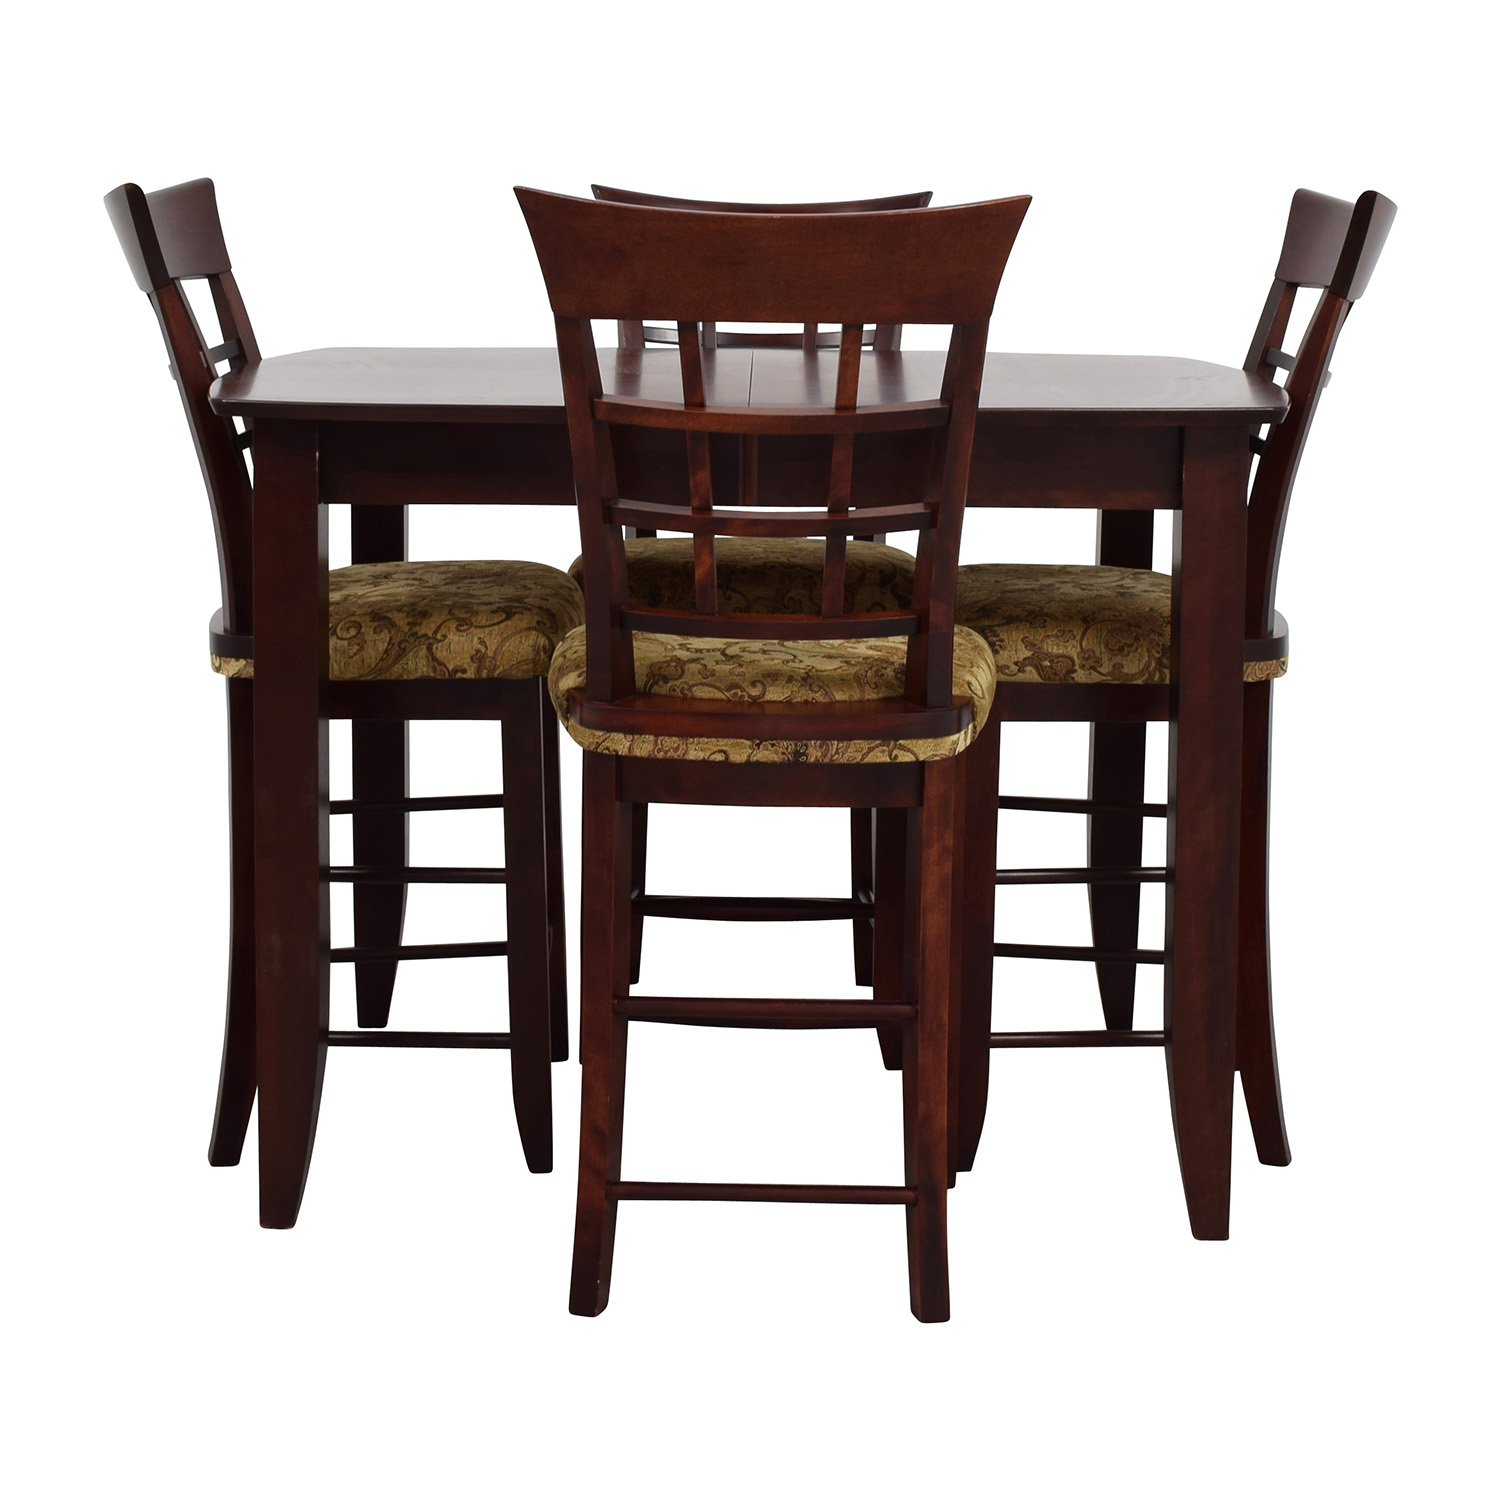 High Top Dining Table with Four Chairs sale